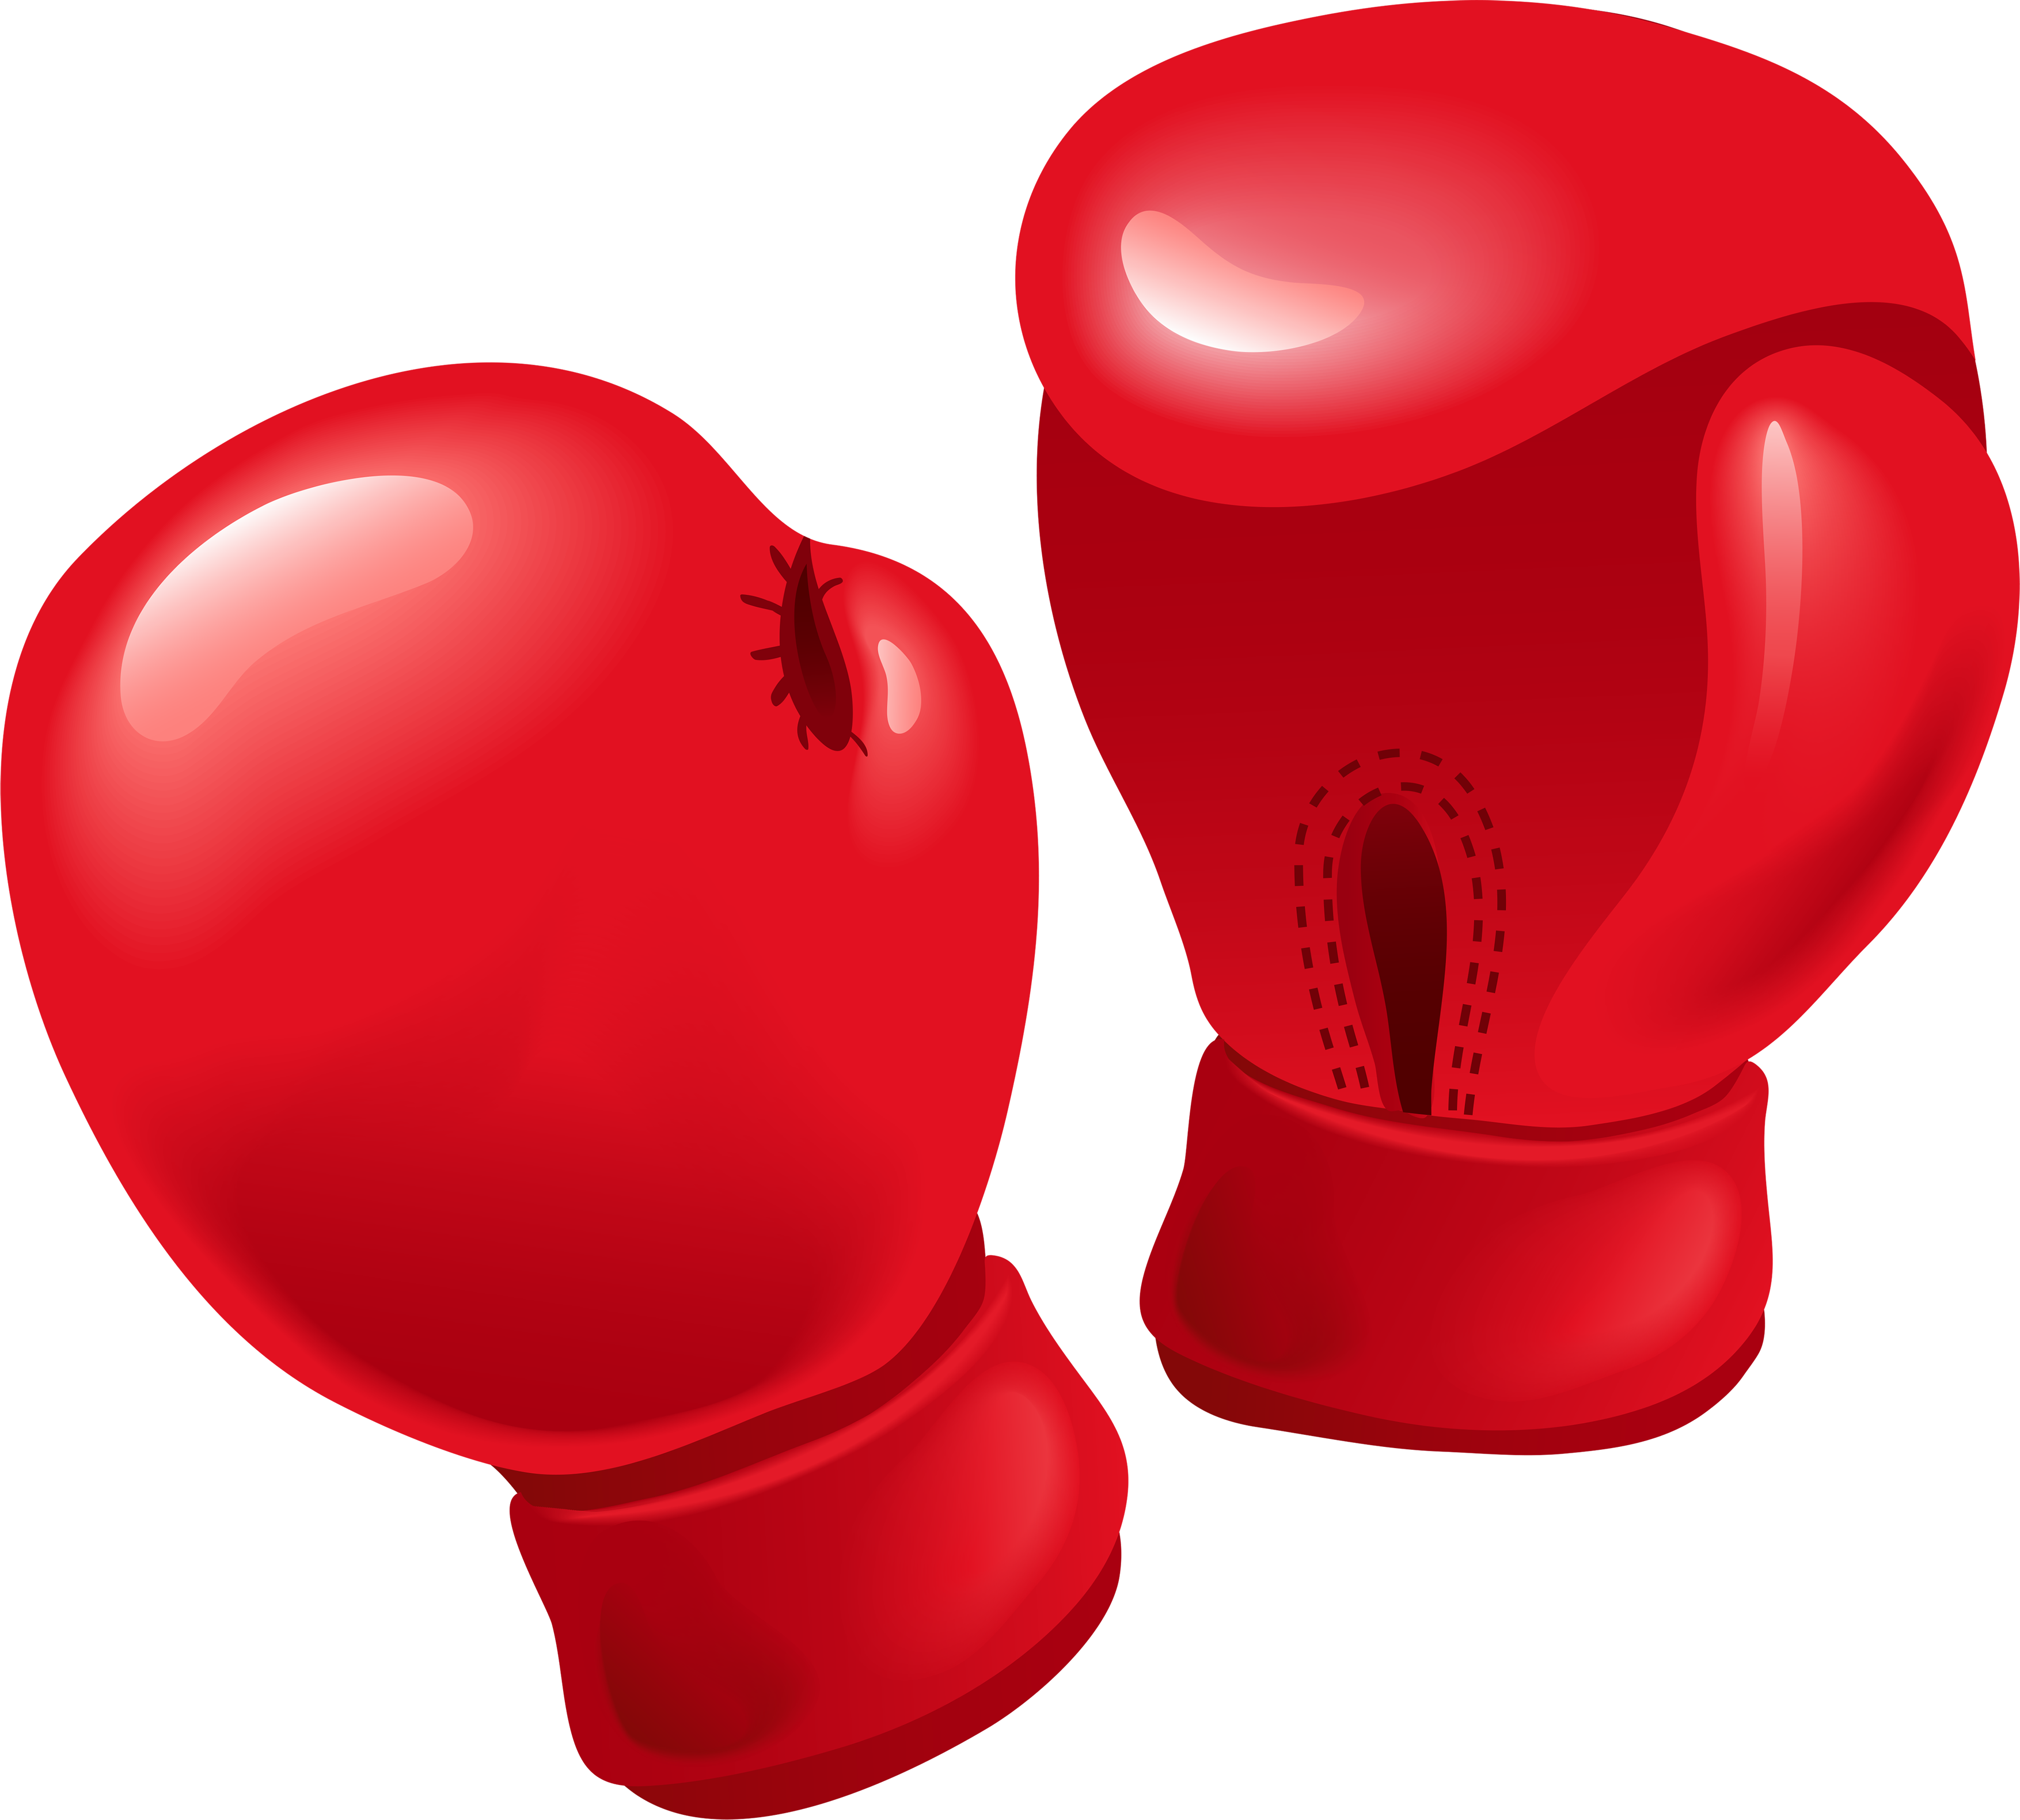 3508x3161 Boxing Gloves Ing Gloves Images Free Download Clip Art